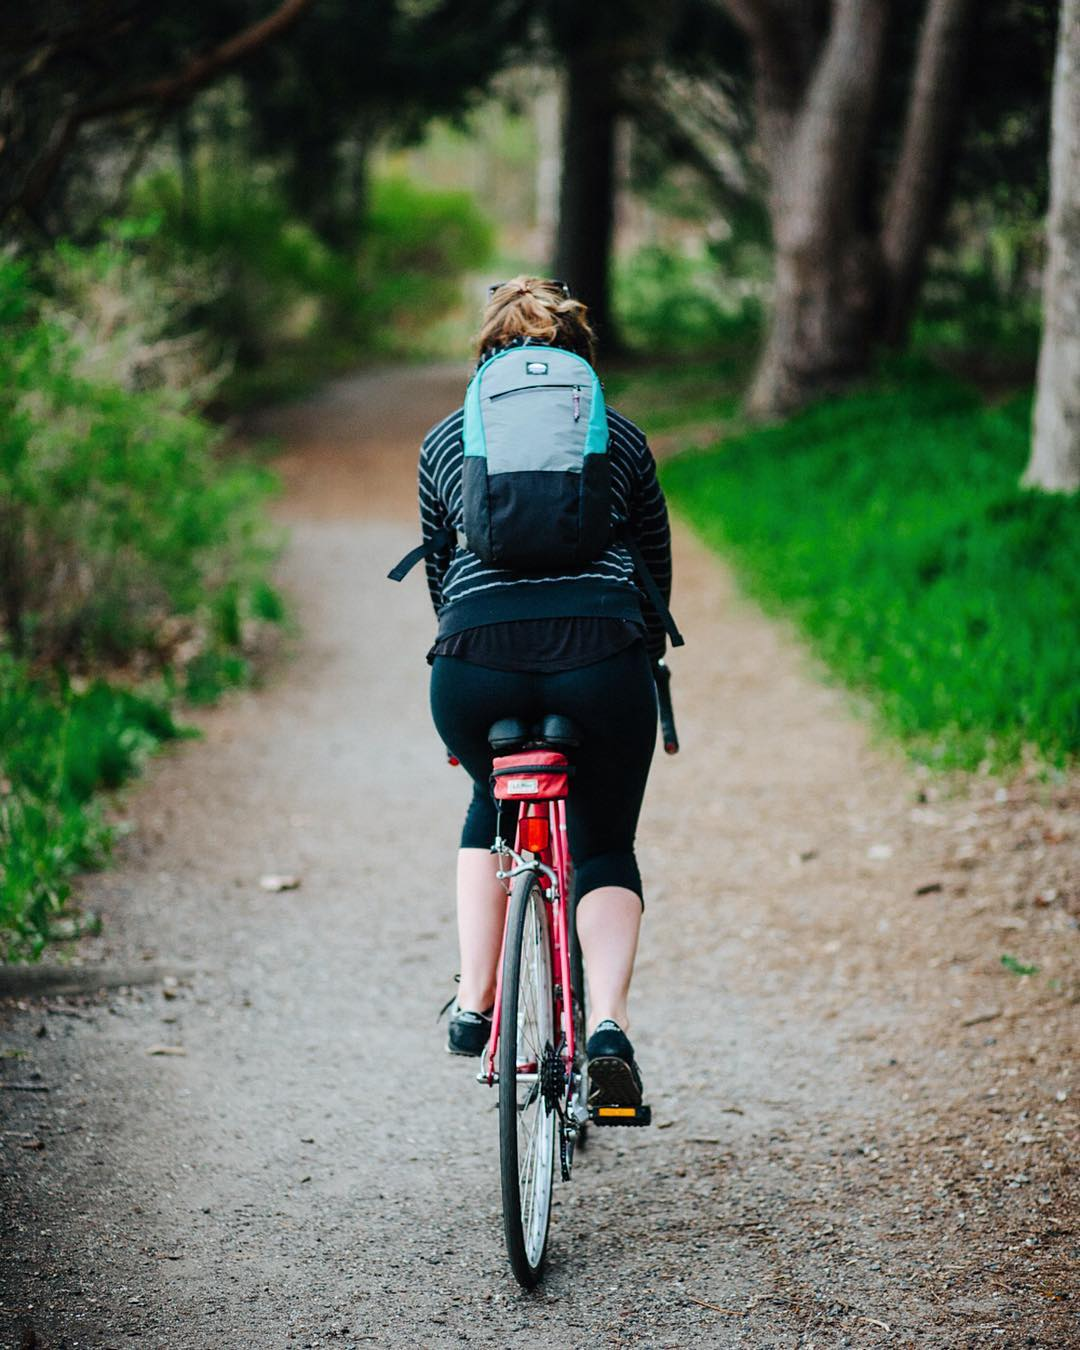 The #Flowfold Optimist is a 10L mini backpack for mini adventures. Perfect for the essentials you'd bring on a bike ride or half-day hike, this pack comes with water repellant features to keep contents dry and clean. Find it on preorder for 25% off...